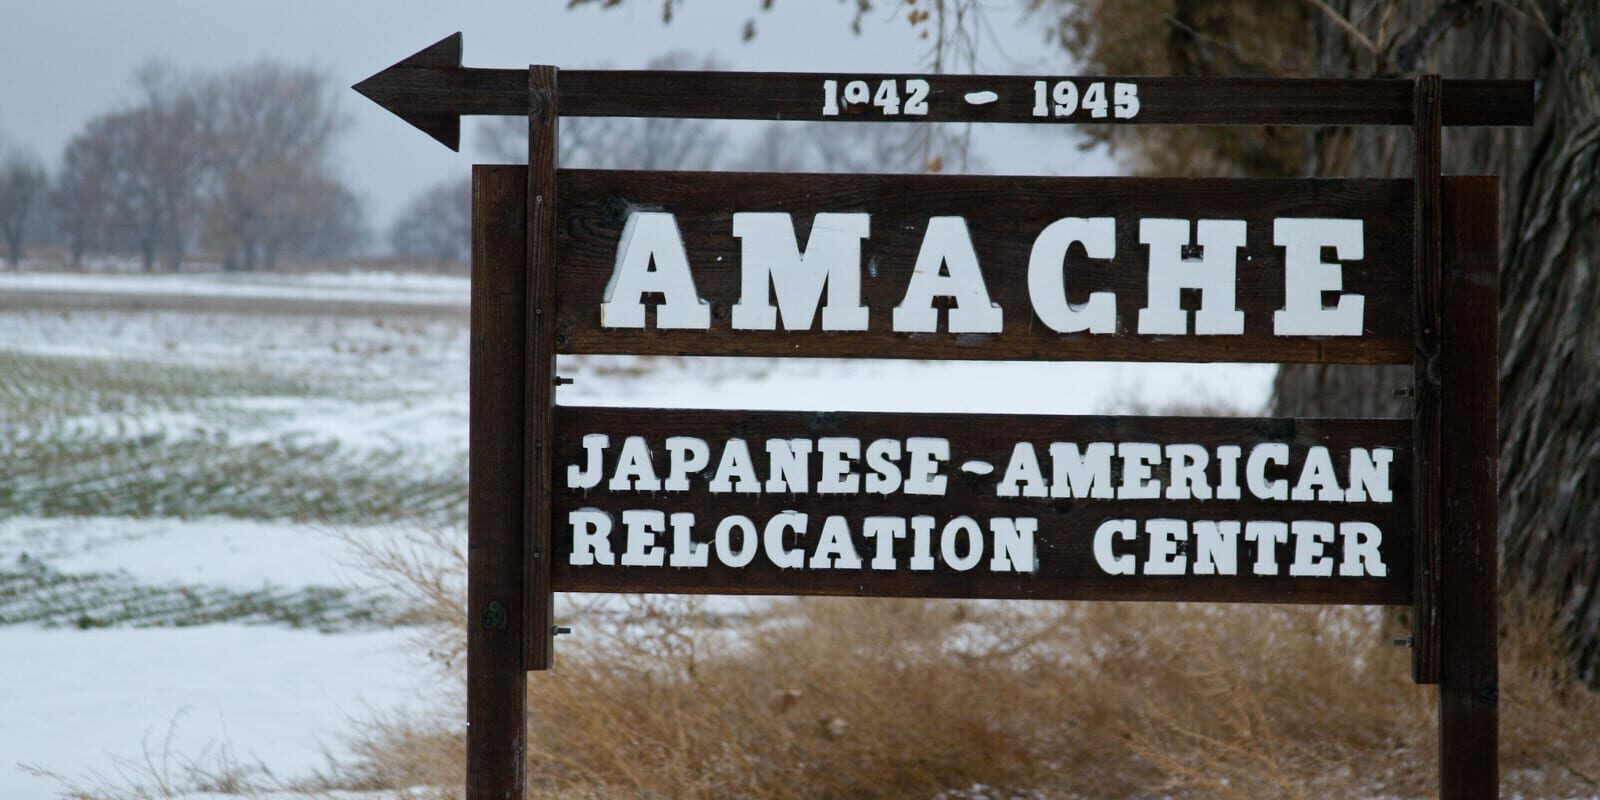 Image of the sign for the Amache Japanese-American Relocation Center in Colorado